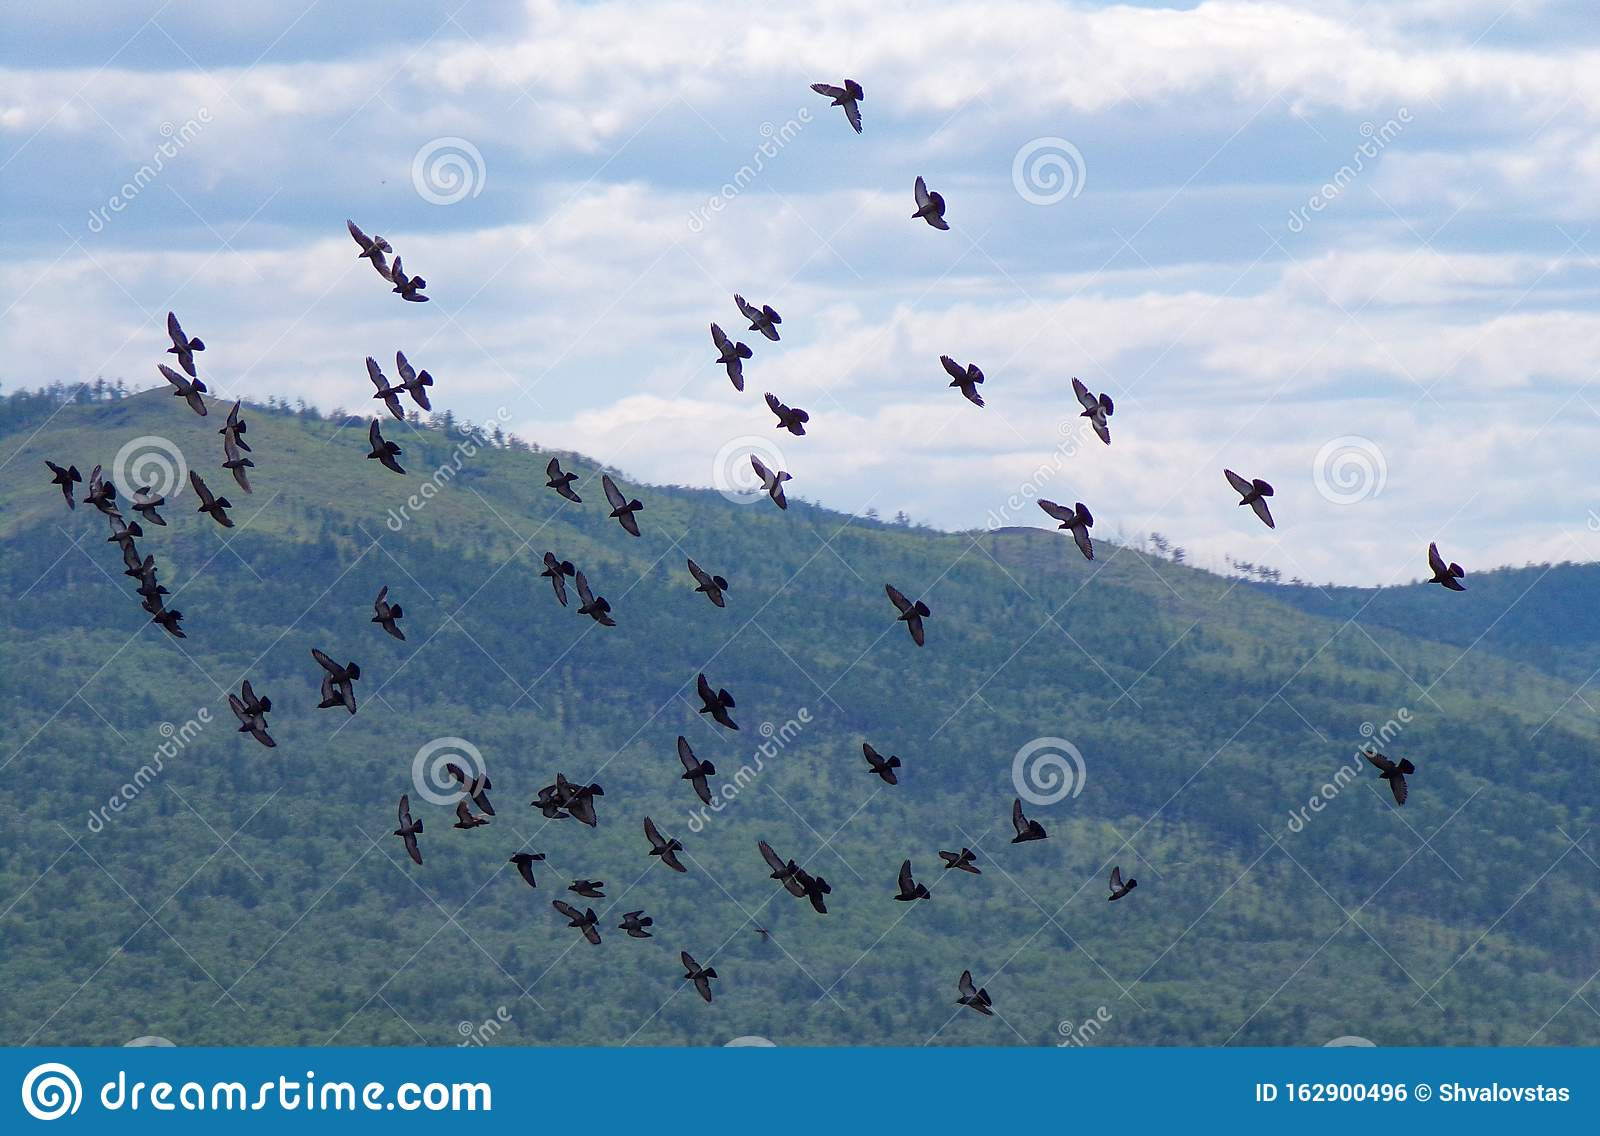 Monog Pigeons Gathered In A Flock And Fly Around The City Stock Photo Image Of Blue Formation 162900496